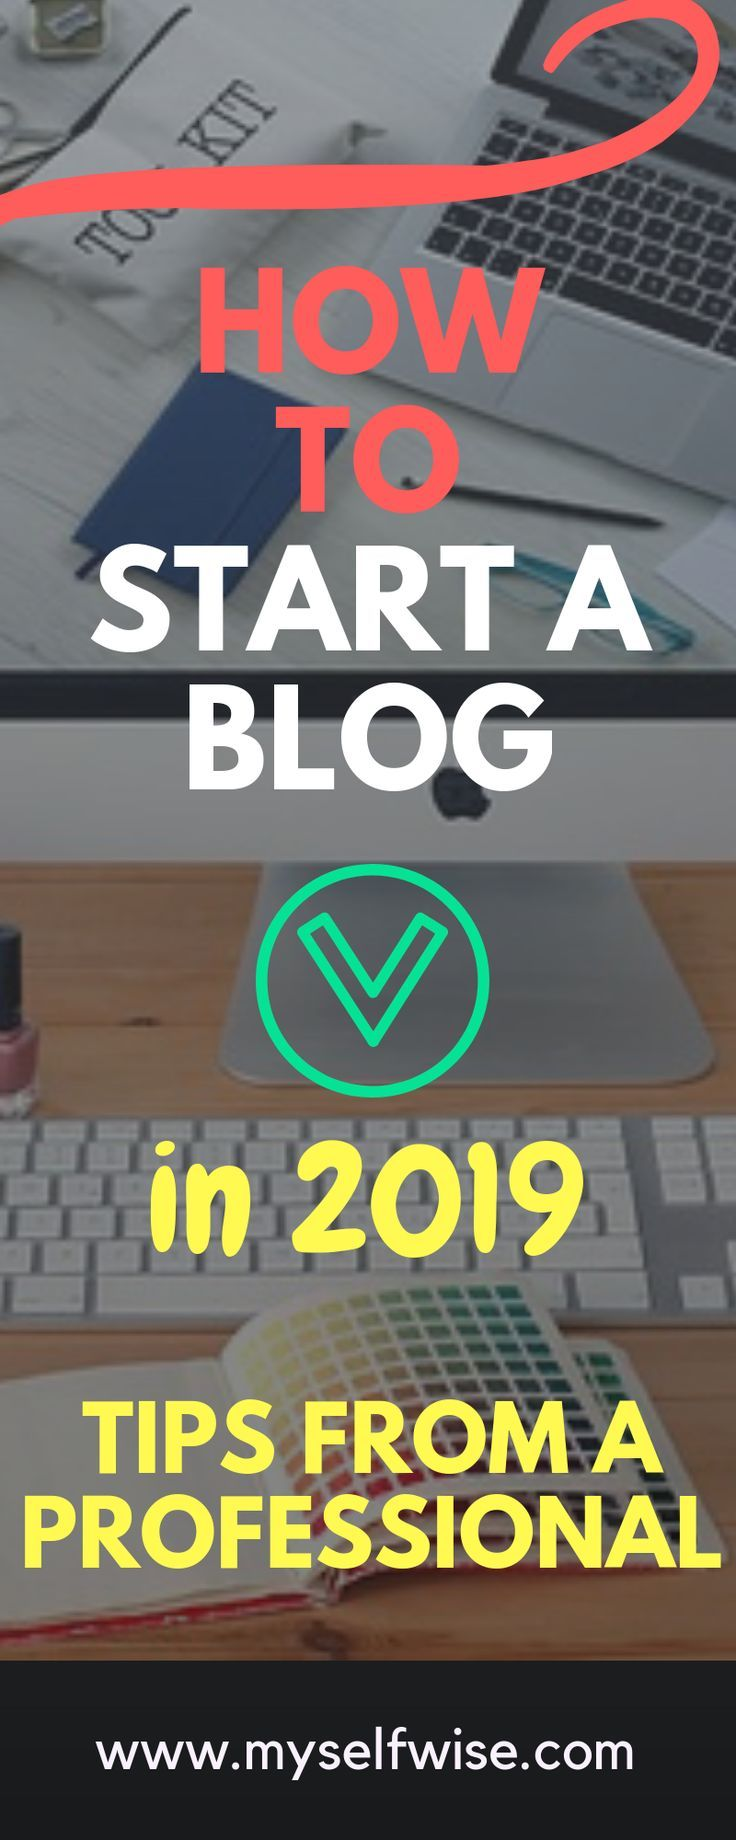 Tips from an IT professional How to start a blog, Blog